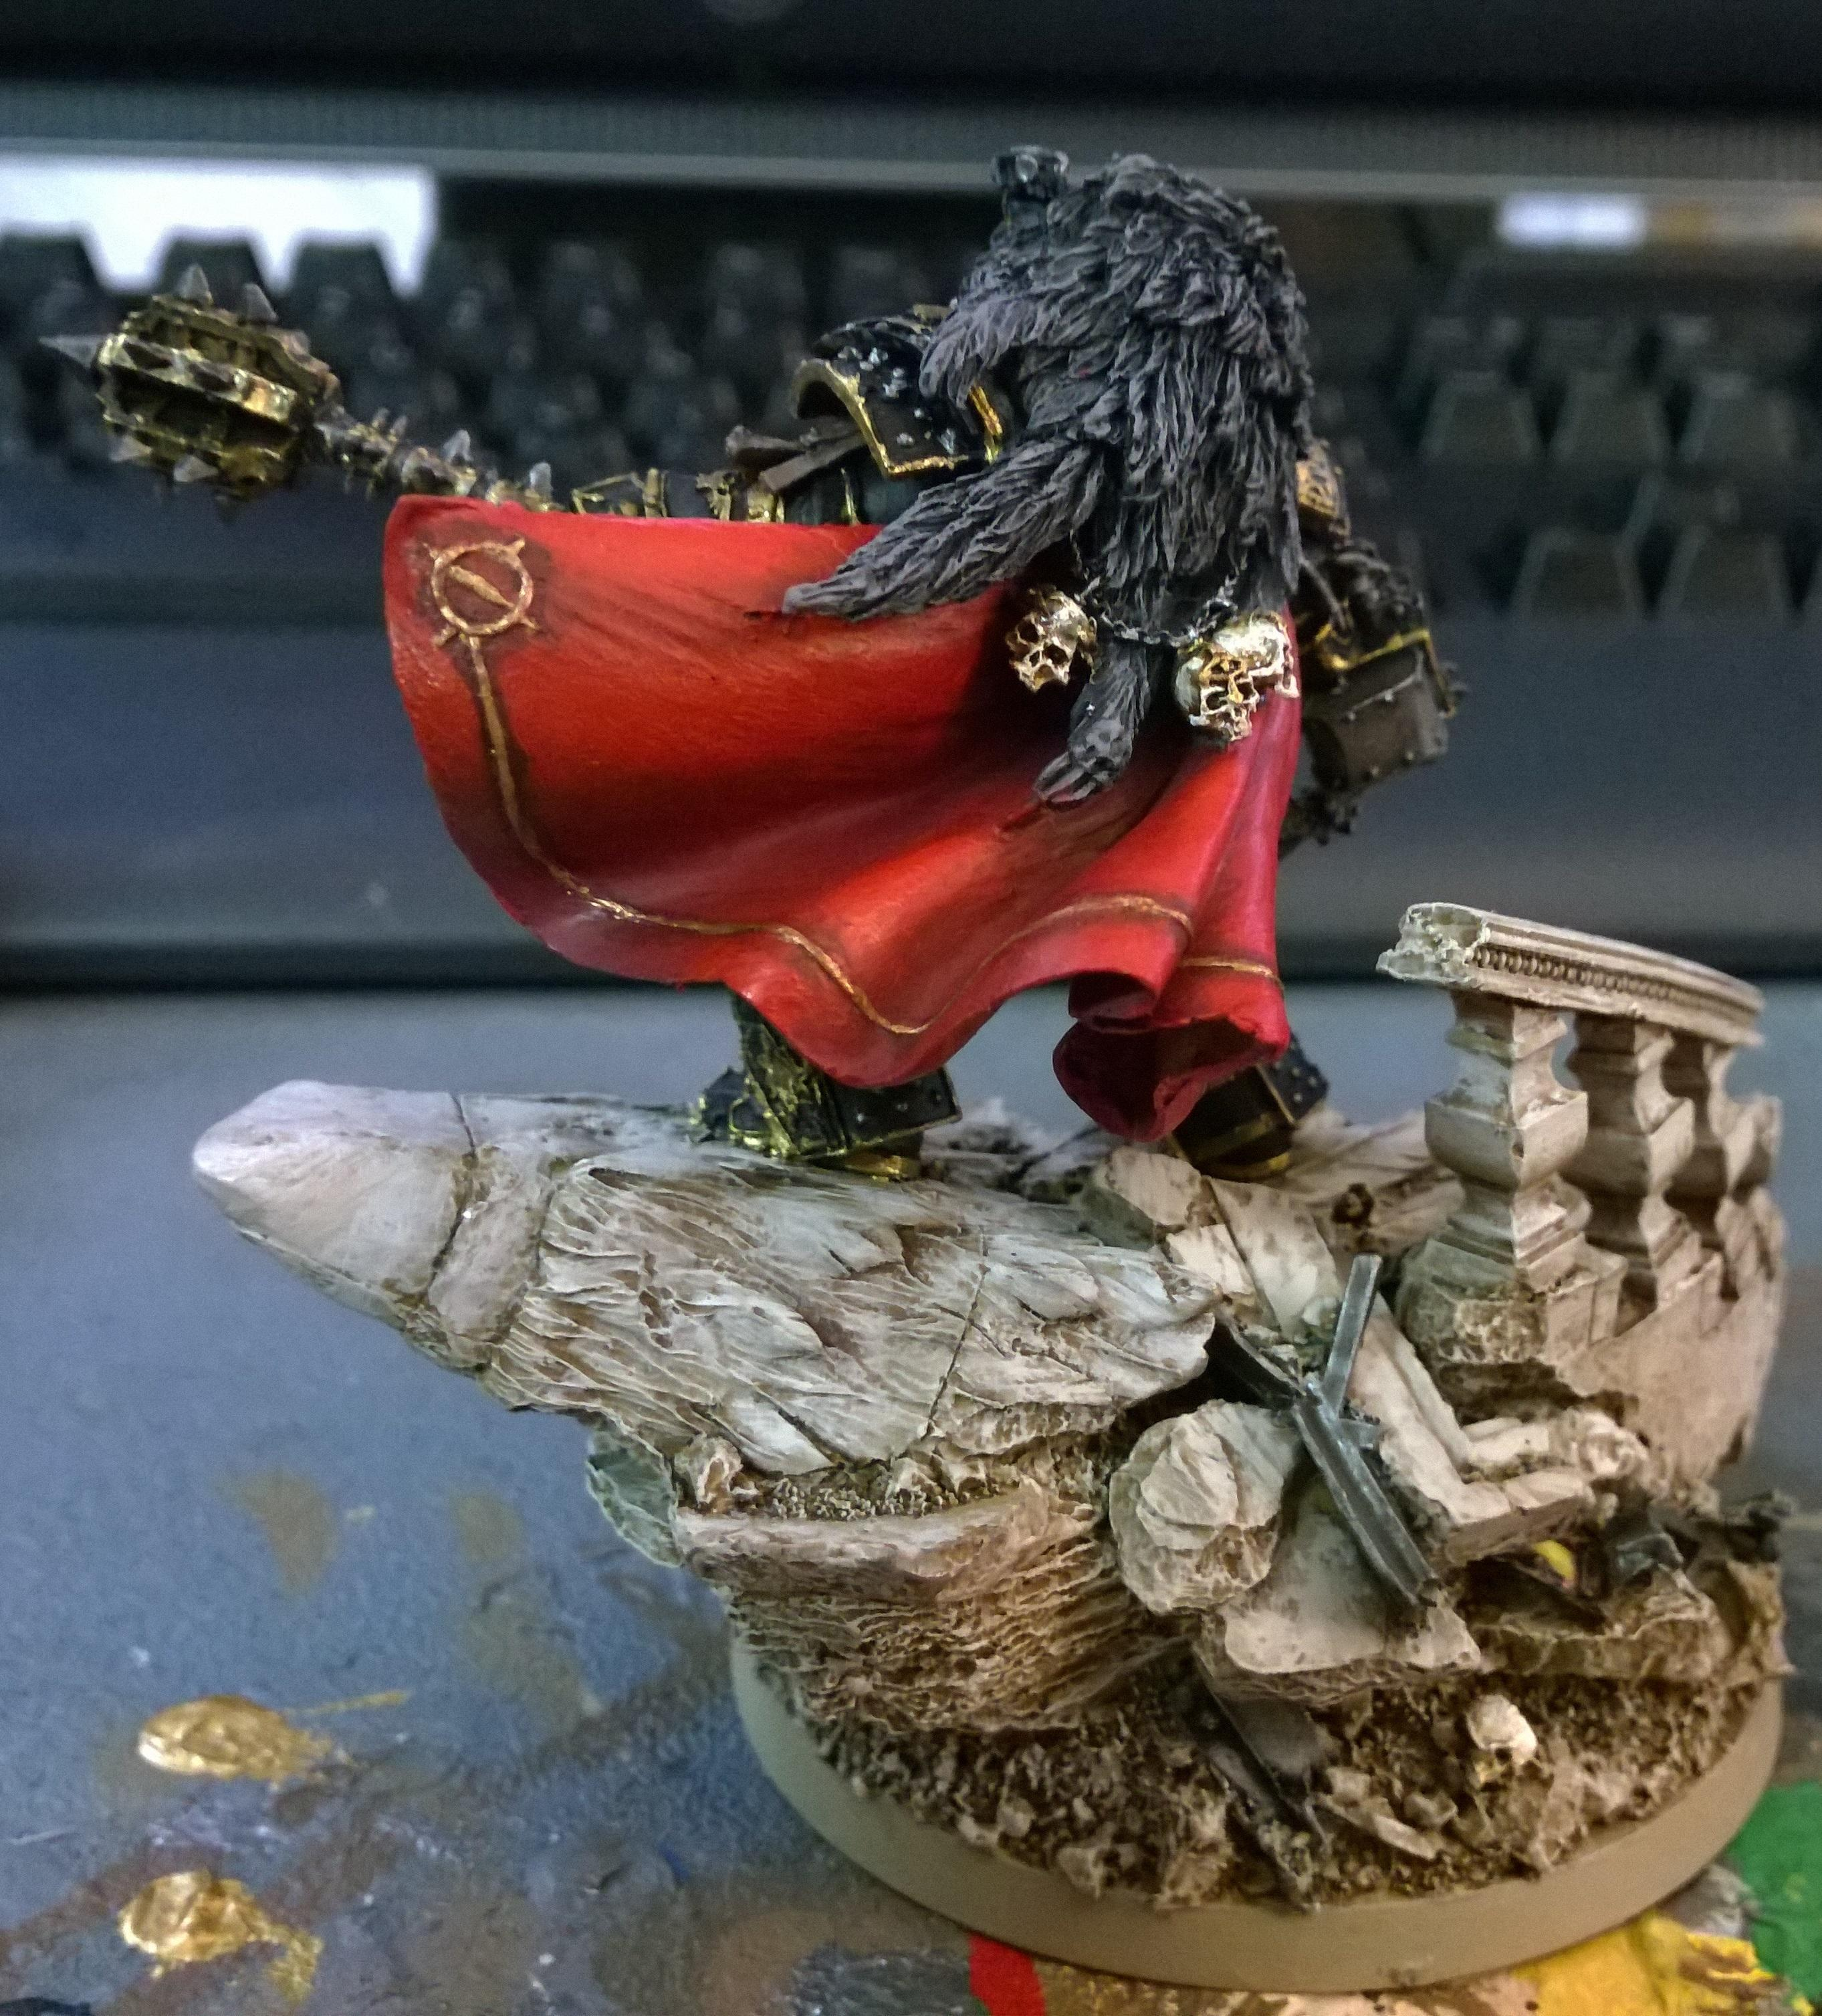 30k, Age Of Darkness, Character, Display, Forge World, Horus, Horus Heresy, Horus The Warmaster, Legion, Luna Wolves, Primarch, Sons Of Horus, Space Marines